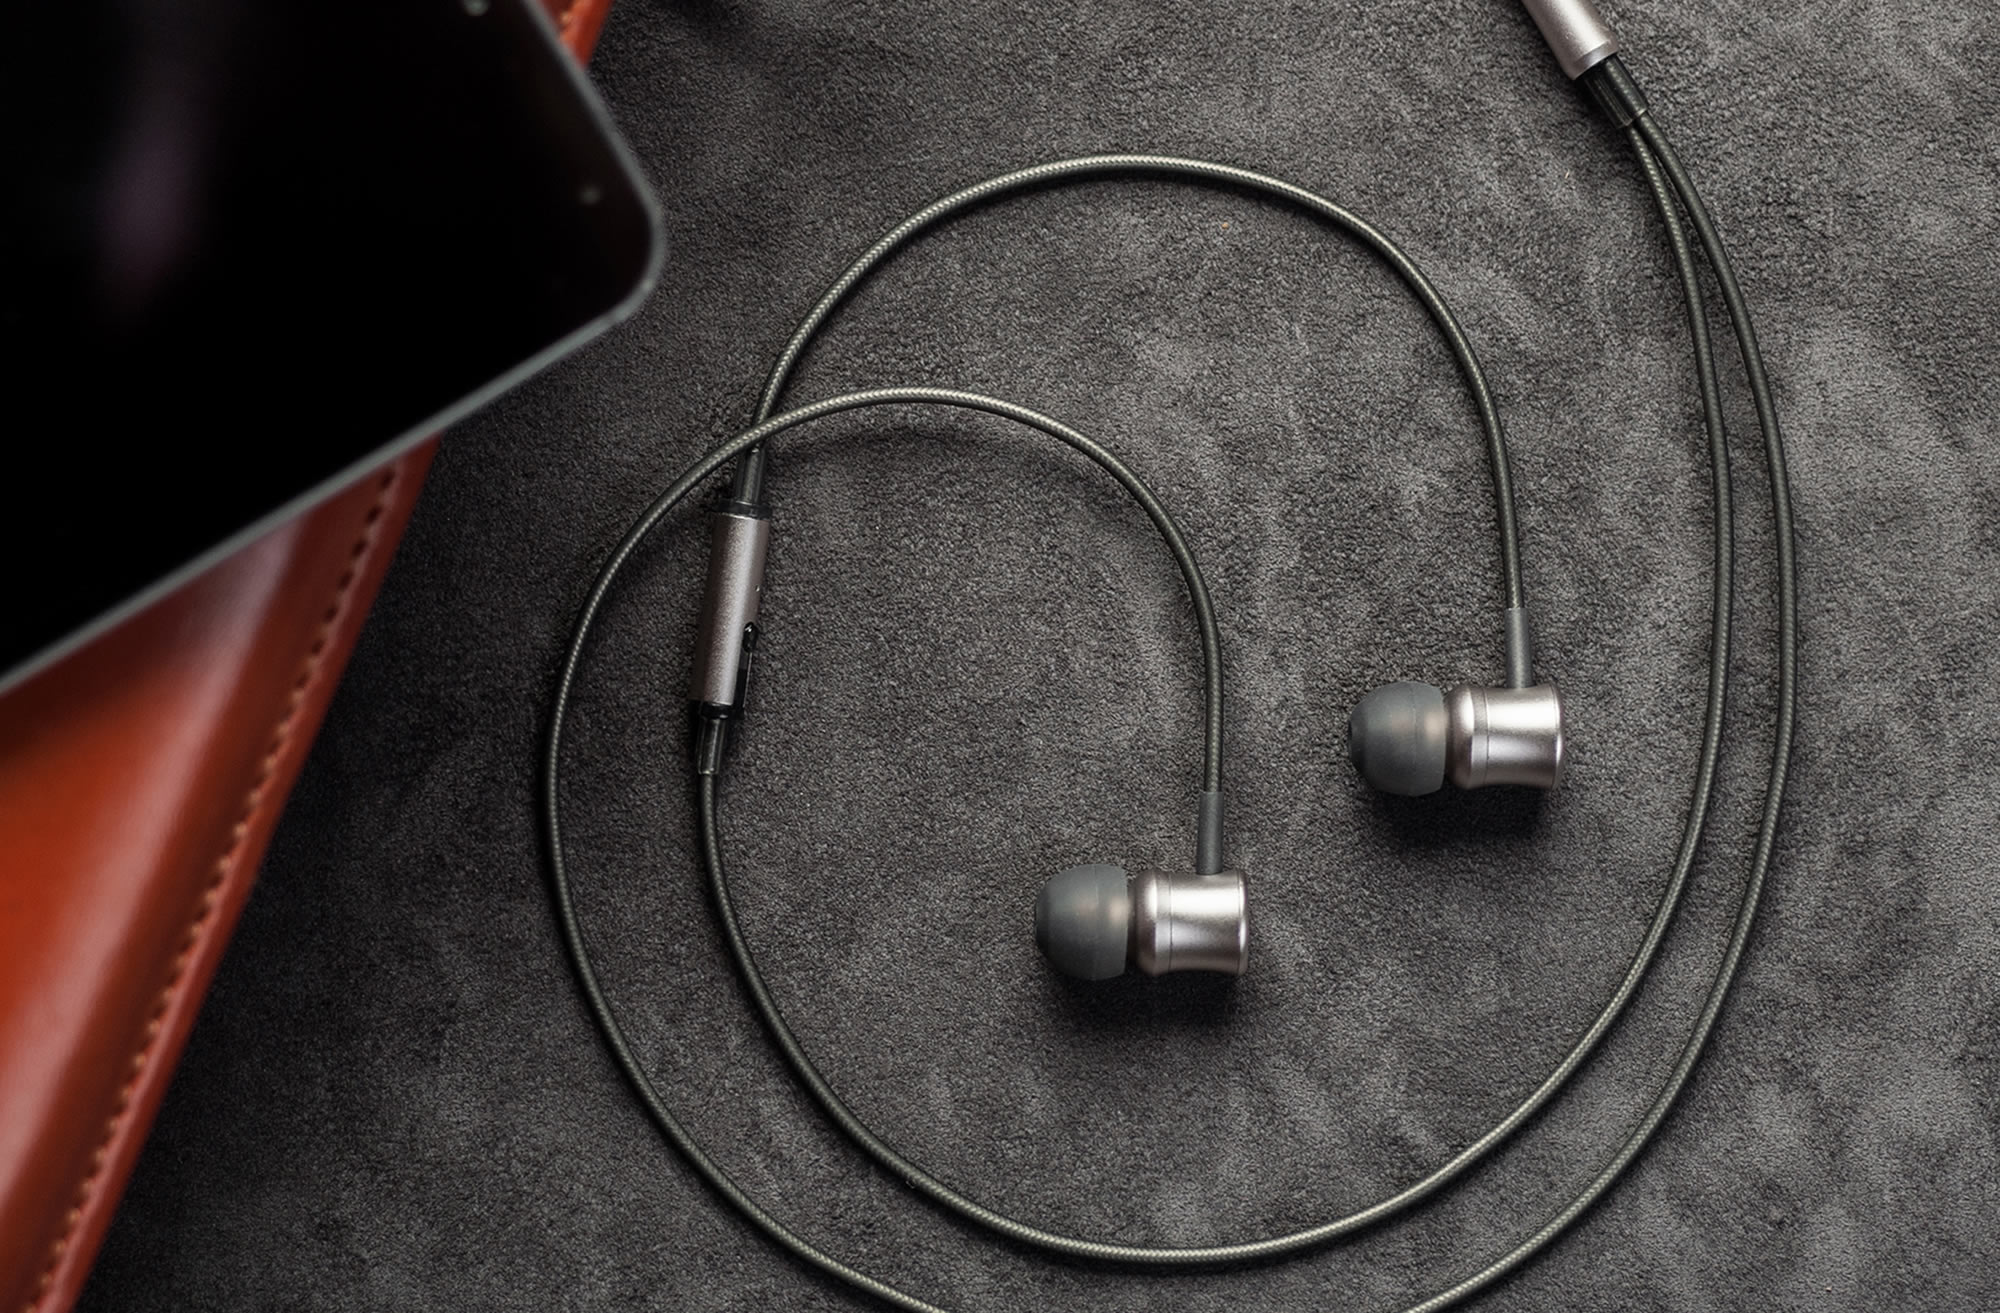 Meze 11 Neo Iridium earphones on grey carpeting